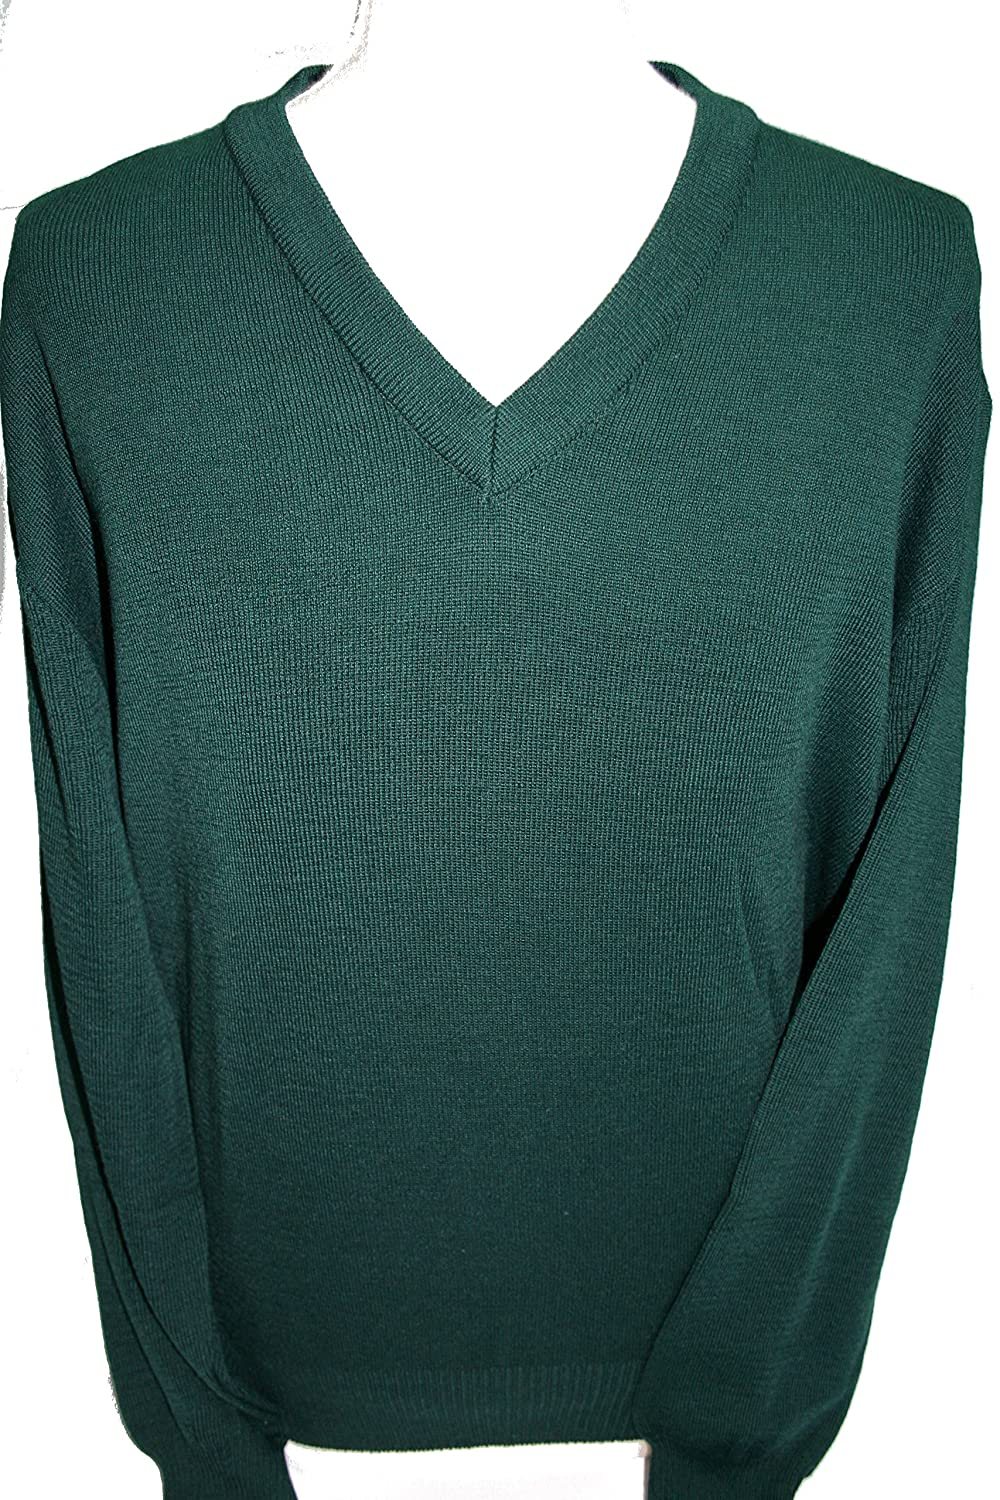 CLASSIC LIGHT WEIGHT V NECK SWEATER / JUMPER. CASUAL, WORKWEAR, OUTDOOR. #77057